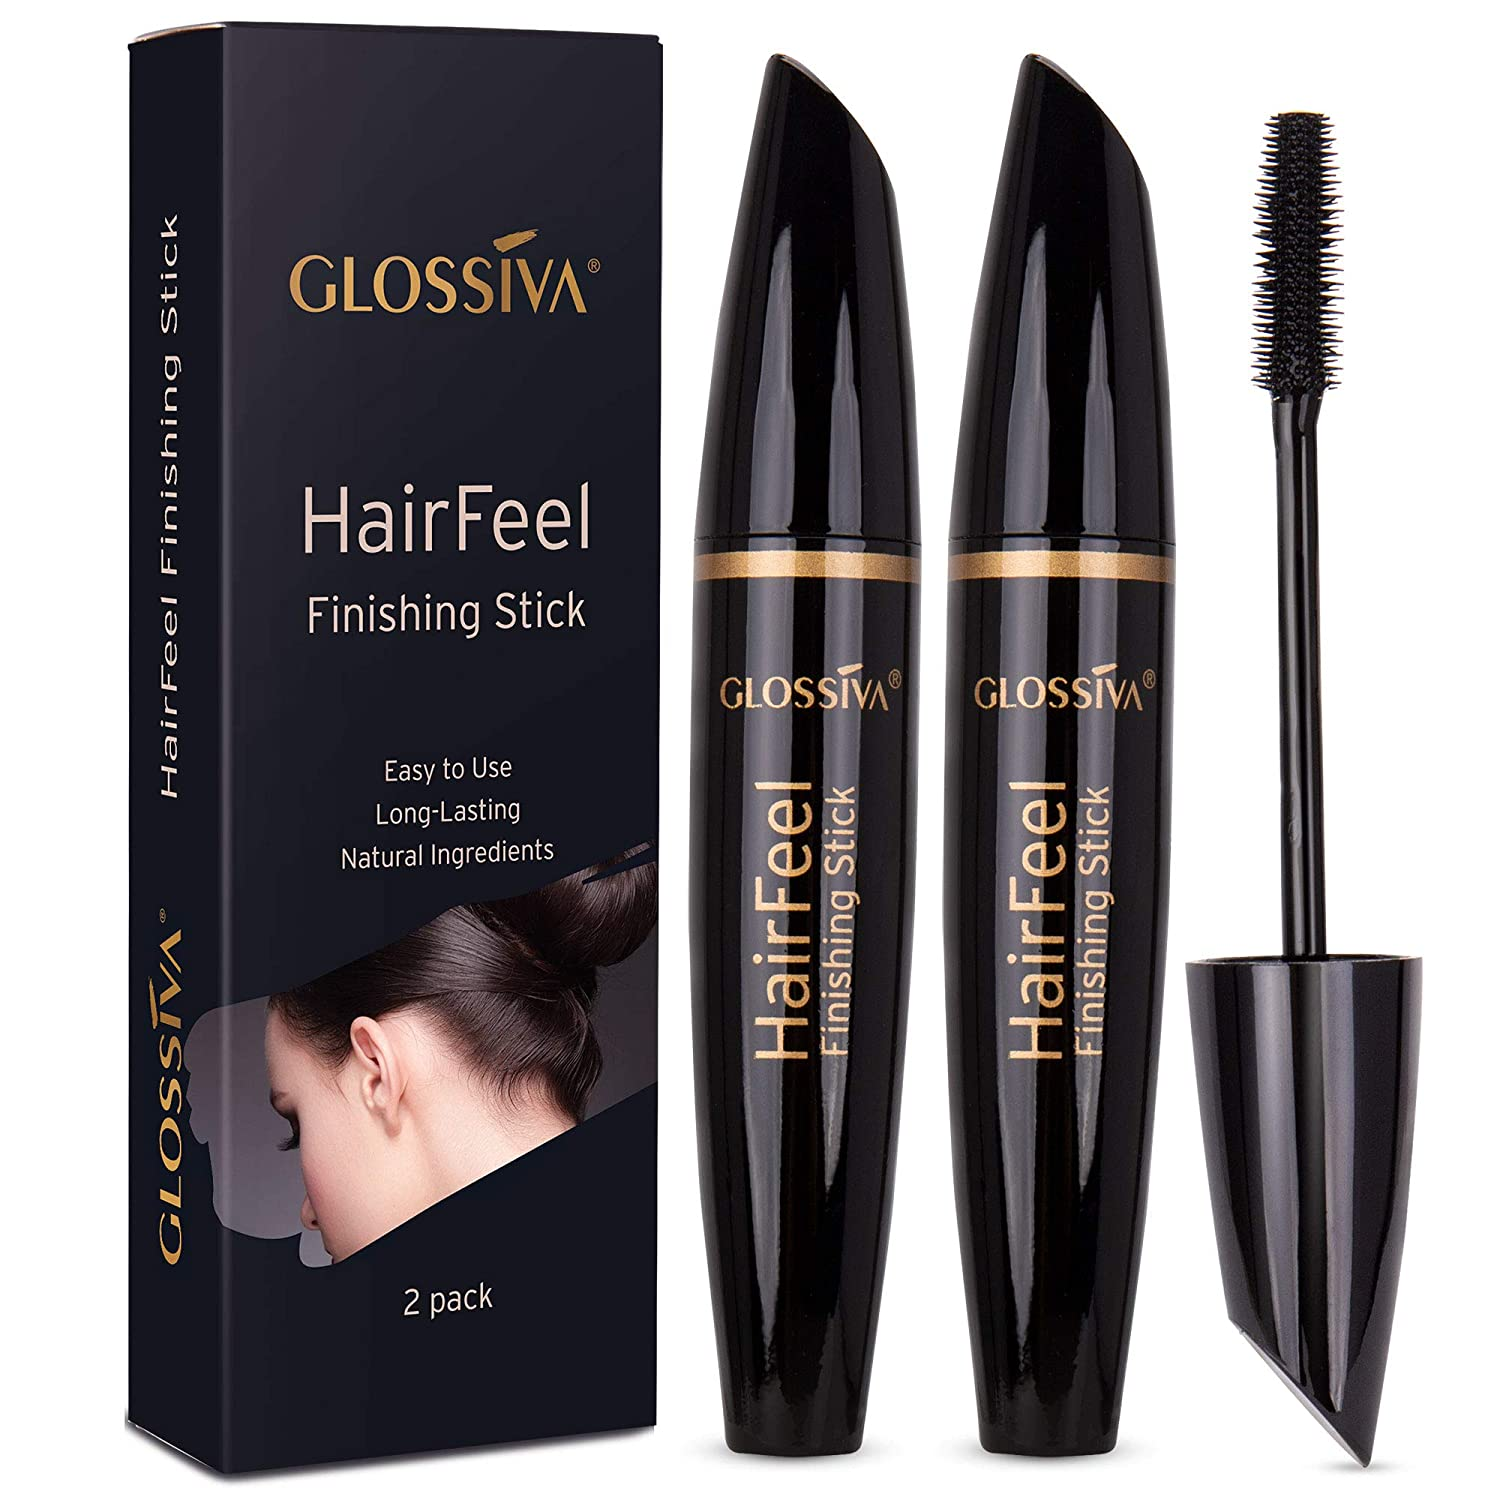 Glossiva Hair Finishing Stick, 25ml, 2 Pack- For Small Broken Hair - Hair Stick for Flyaway Hairs - Natural Ingredients - Fast Solution for Neat Hair Styles - Lightweight